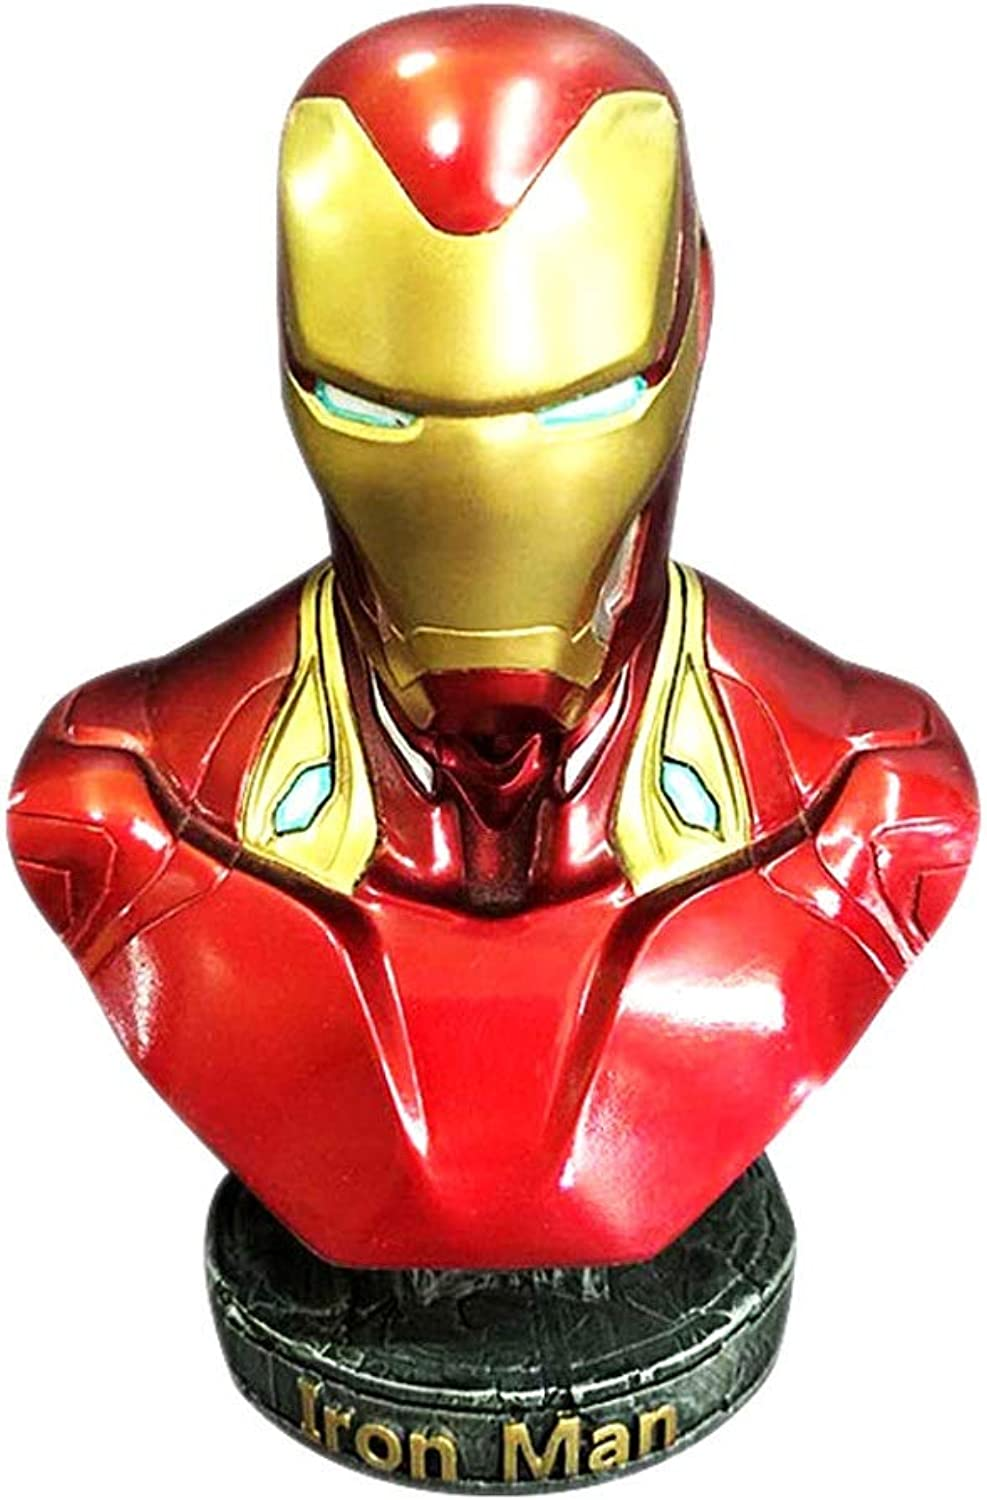 YIN YIN Actionfiguren Avengers Model Marvel Superheld Iron Man MK50 Büste Desktop Dekoration (18cm)